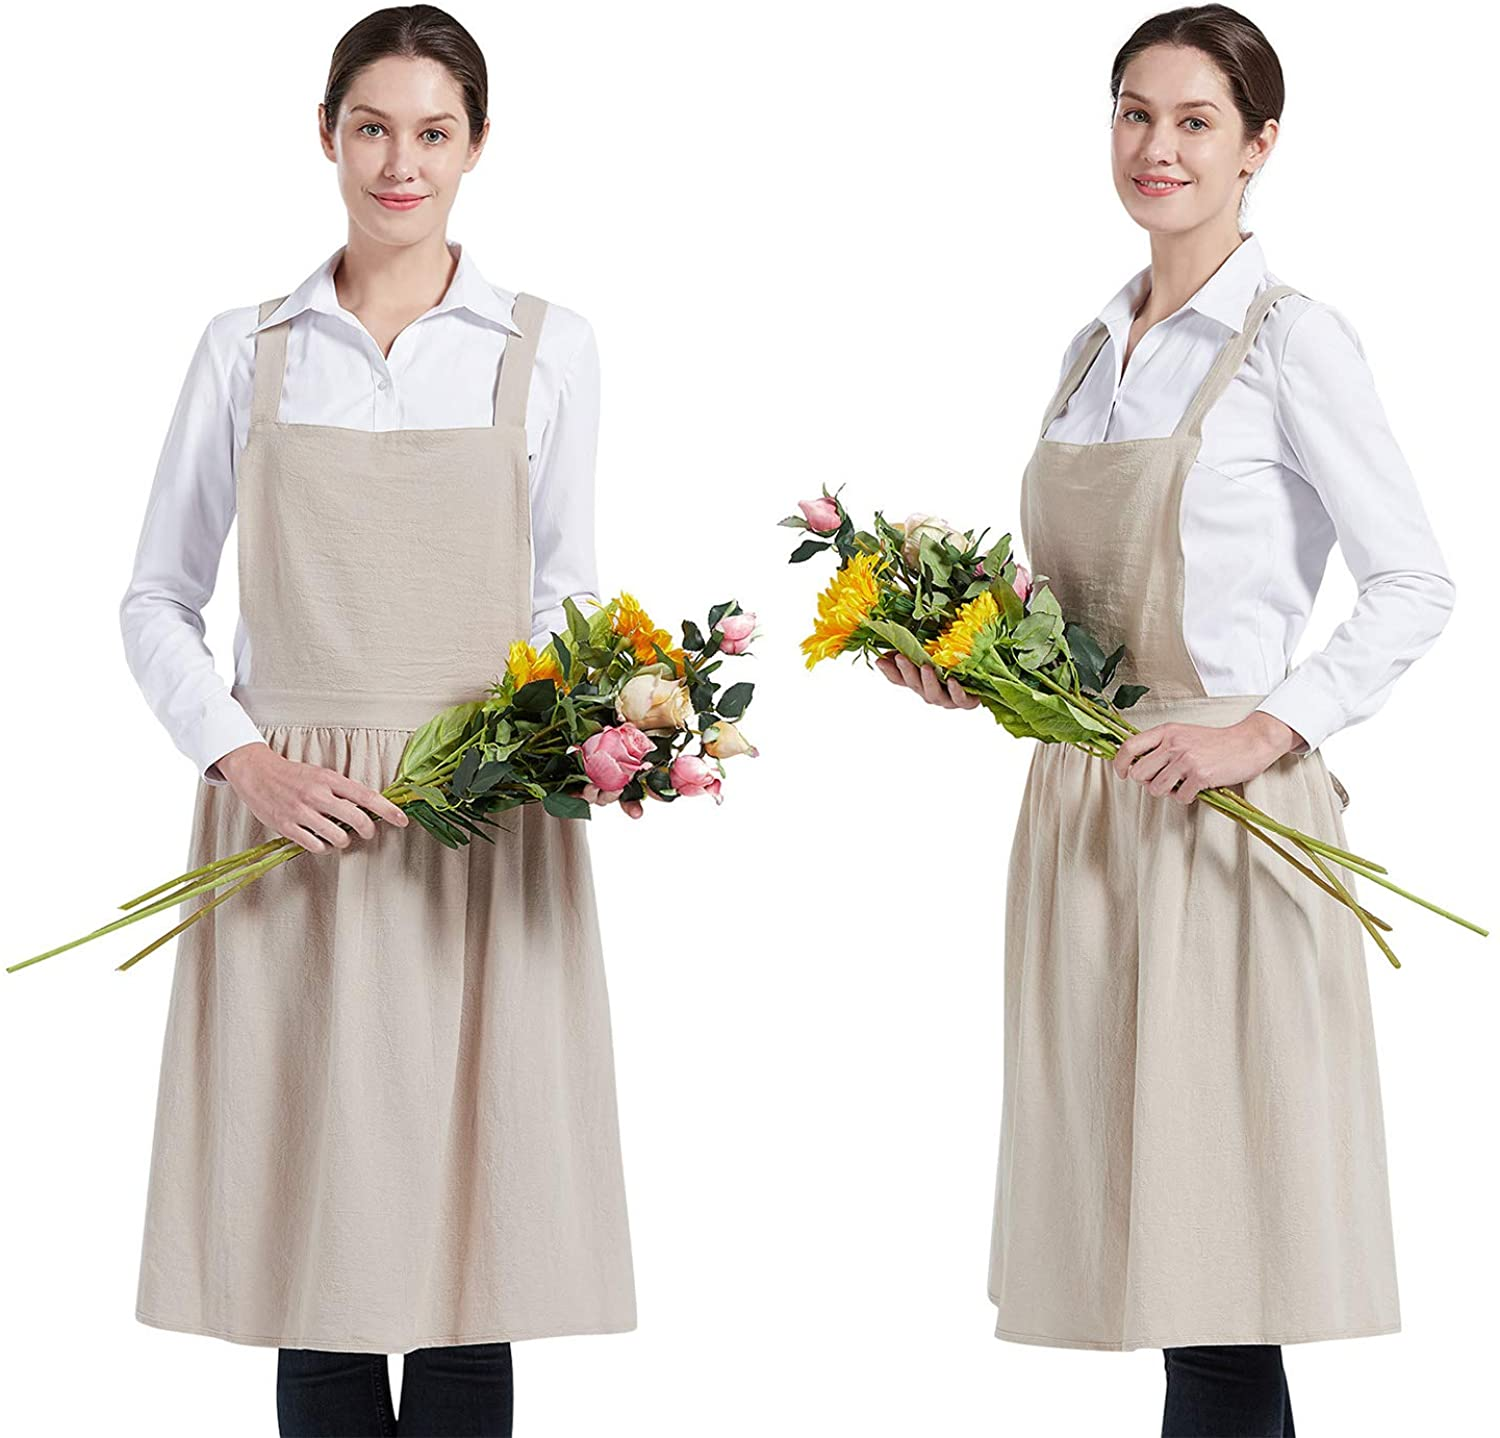 Cottagecore Clothing, Soft Aesthetic Nanxson Women Cotton Linen Bib Apron Cross Back Work Apron for CookingBakingCraftingFlower Arrangement CF3046 $17.98 AT vintagedancer.com